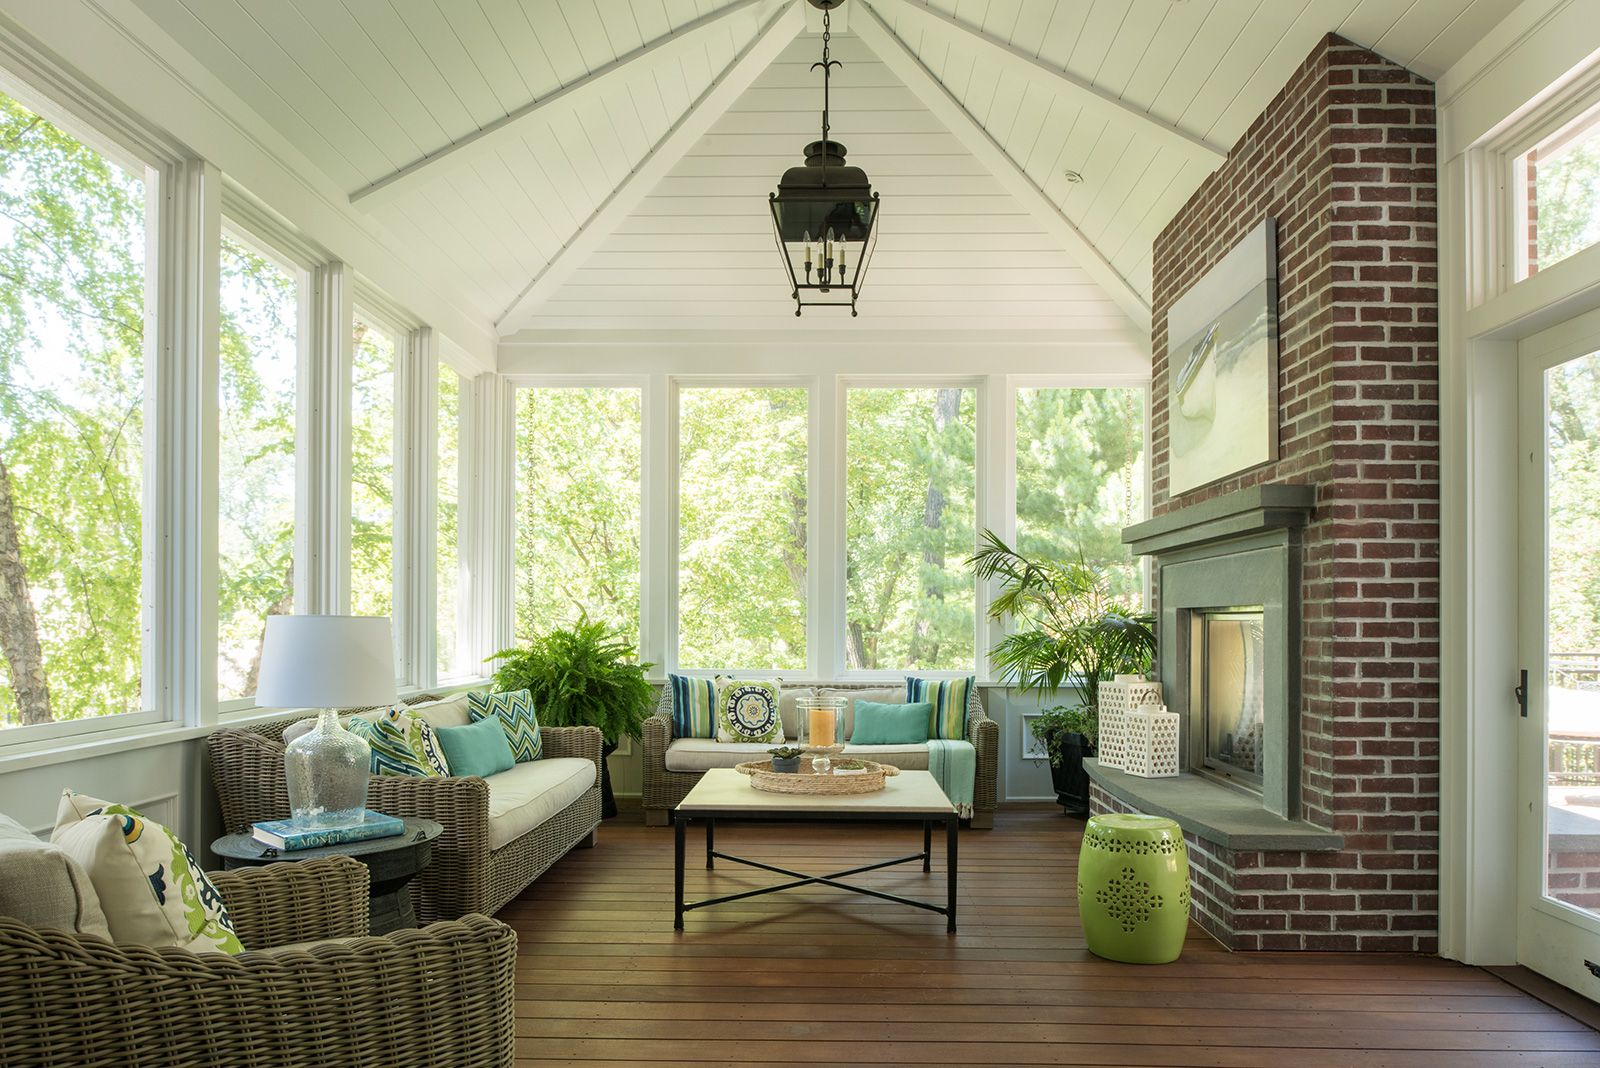 Screened In Porch Vaulted Ceiling With A Brick Fire Place Would Paint The Brick White But Love This Room Overall Coastal Living Rooms House With Porch Home